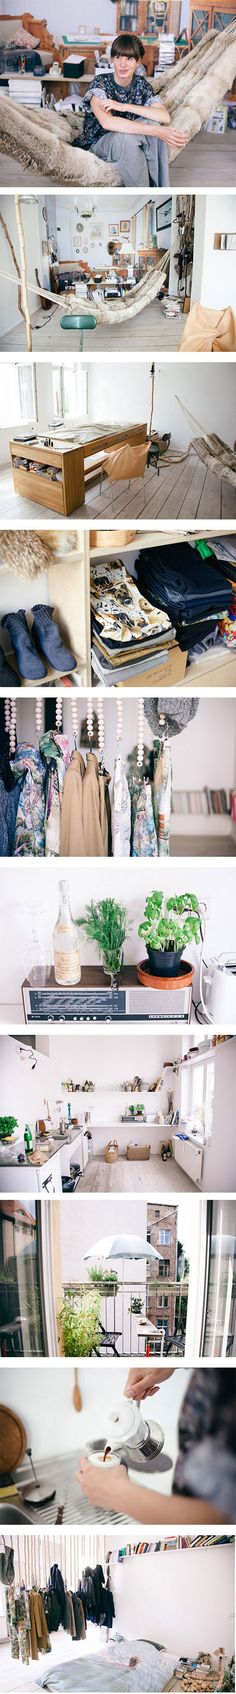 A look inside the BLESS HOME in Berlin Berlin Fashion, Editor, Nest, Cool Style, Blessed, Shops, Interiors, Table Decorations, Room